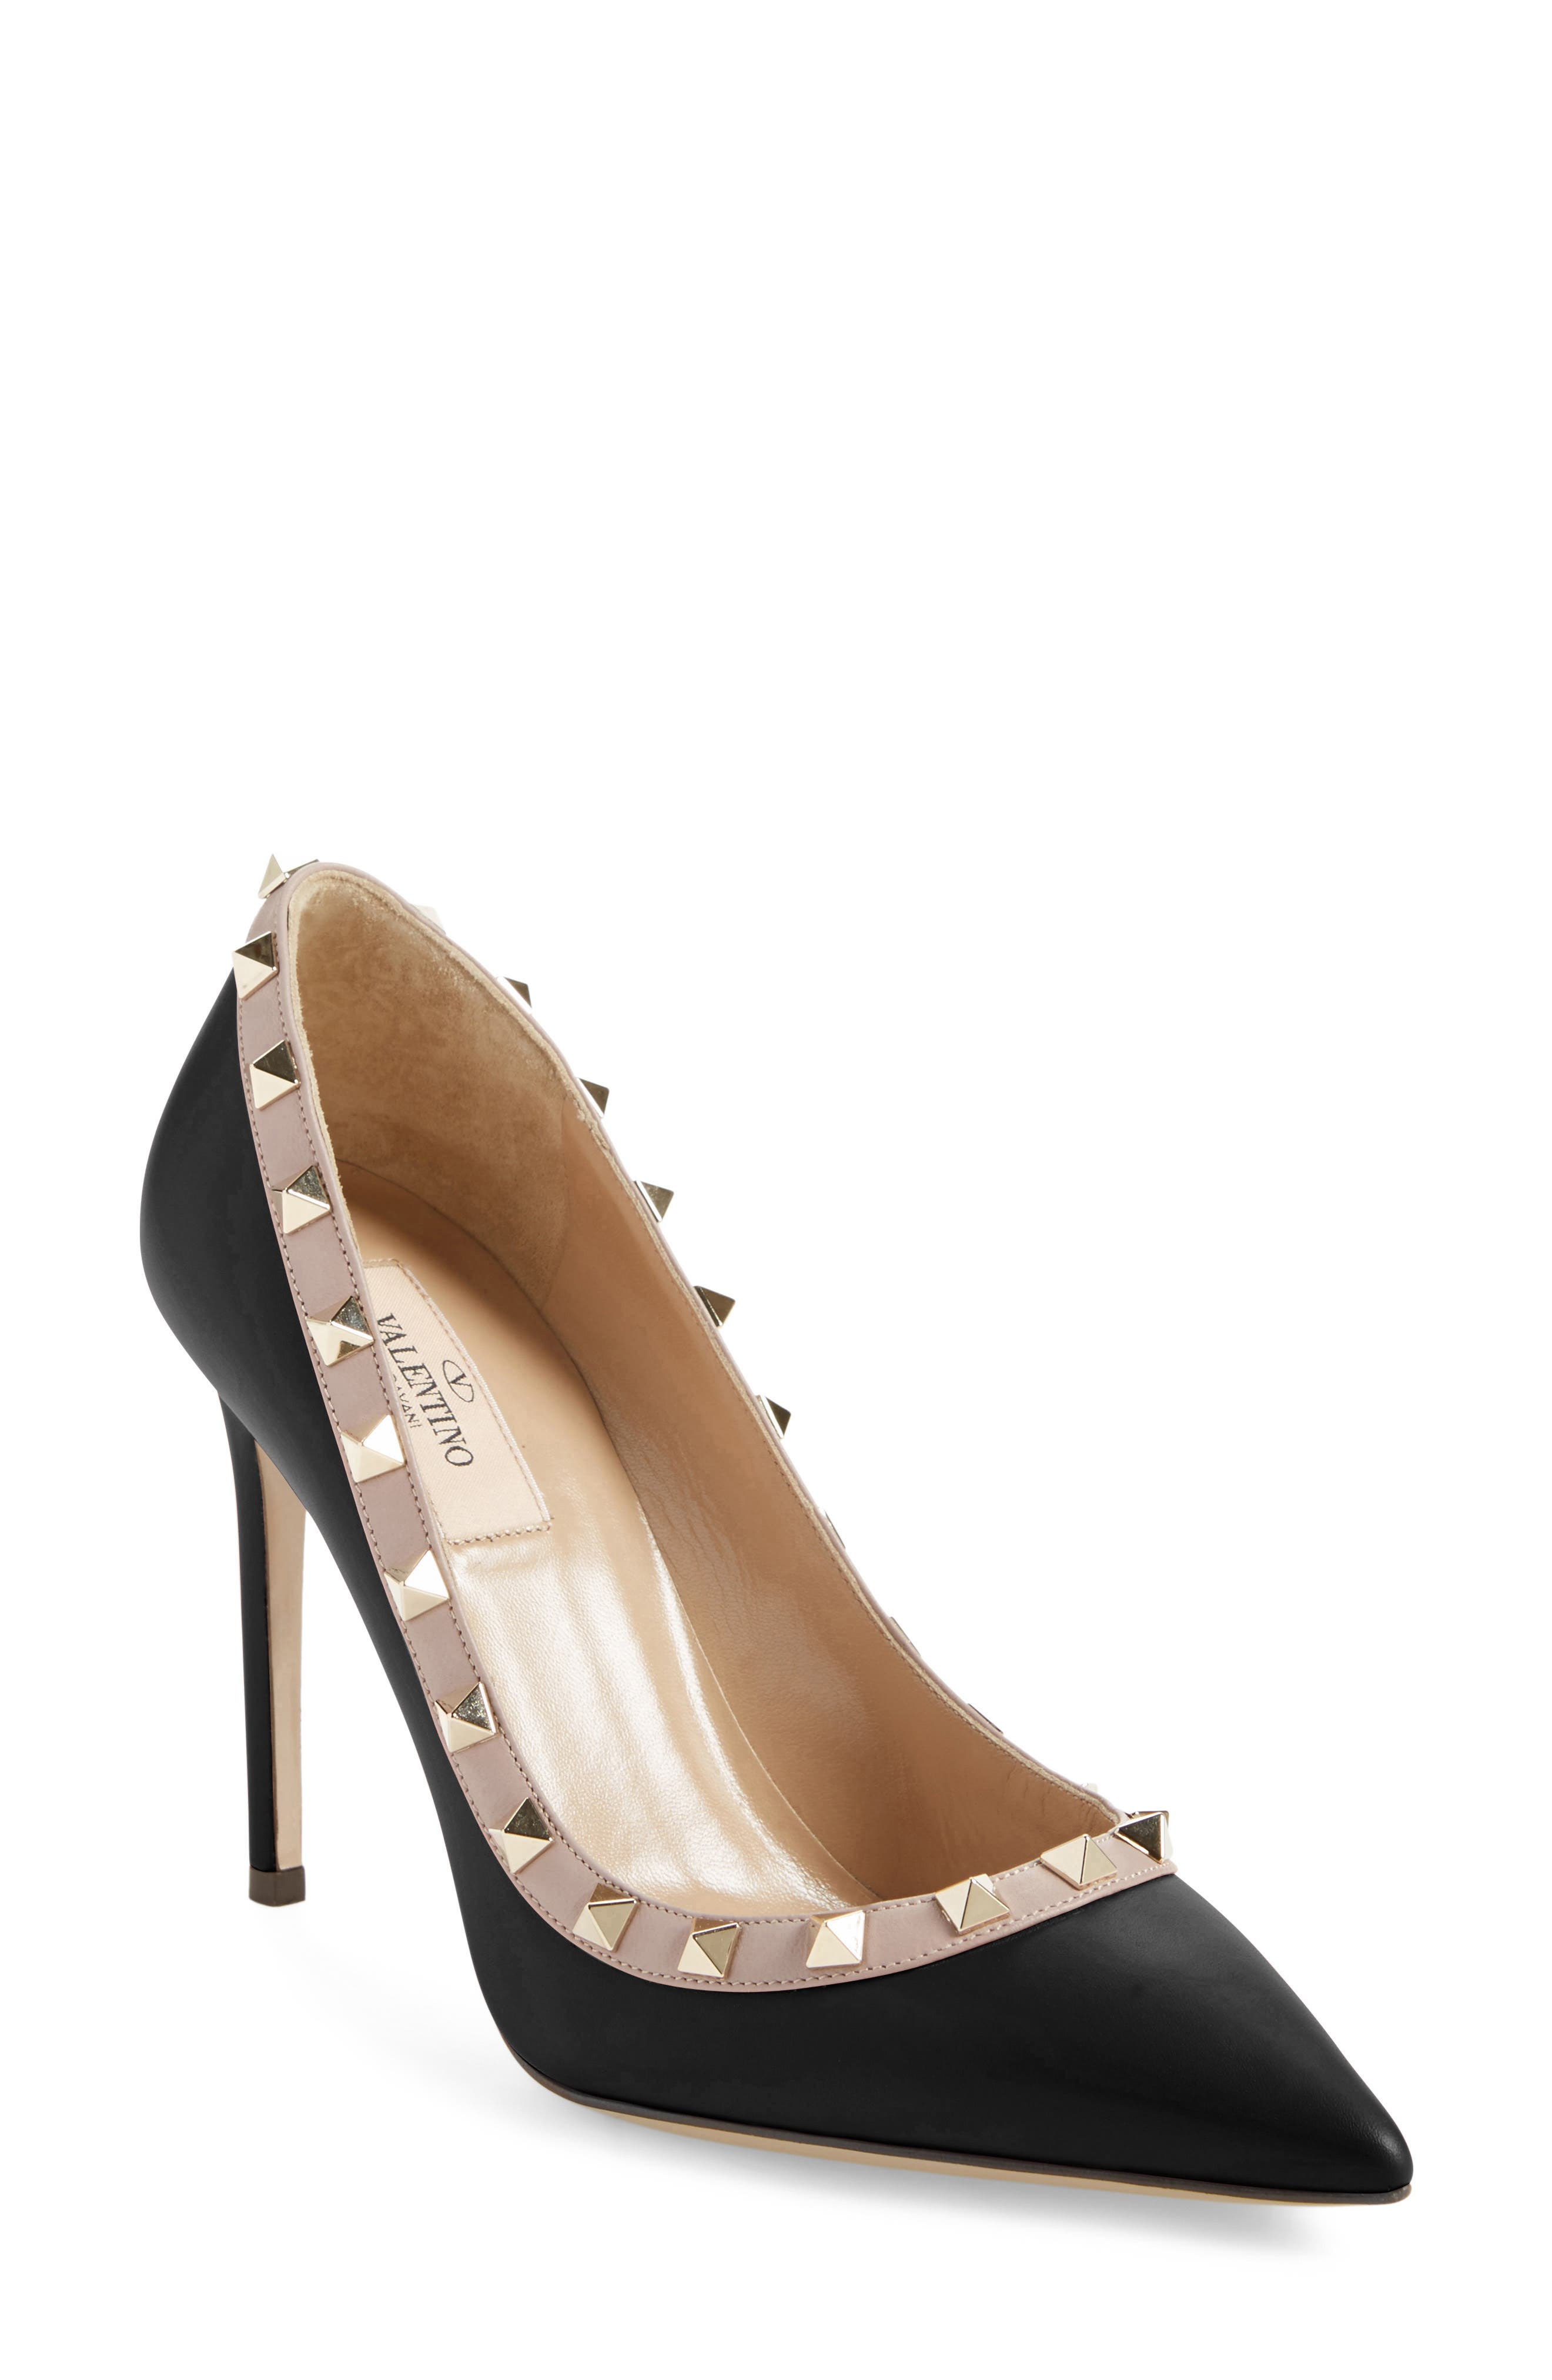 VALENTINO GARAVANI Rockstud Pointy Toe Pump, Main, color, BLACK/ NUDE LEATHER